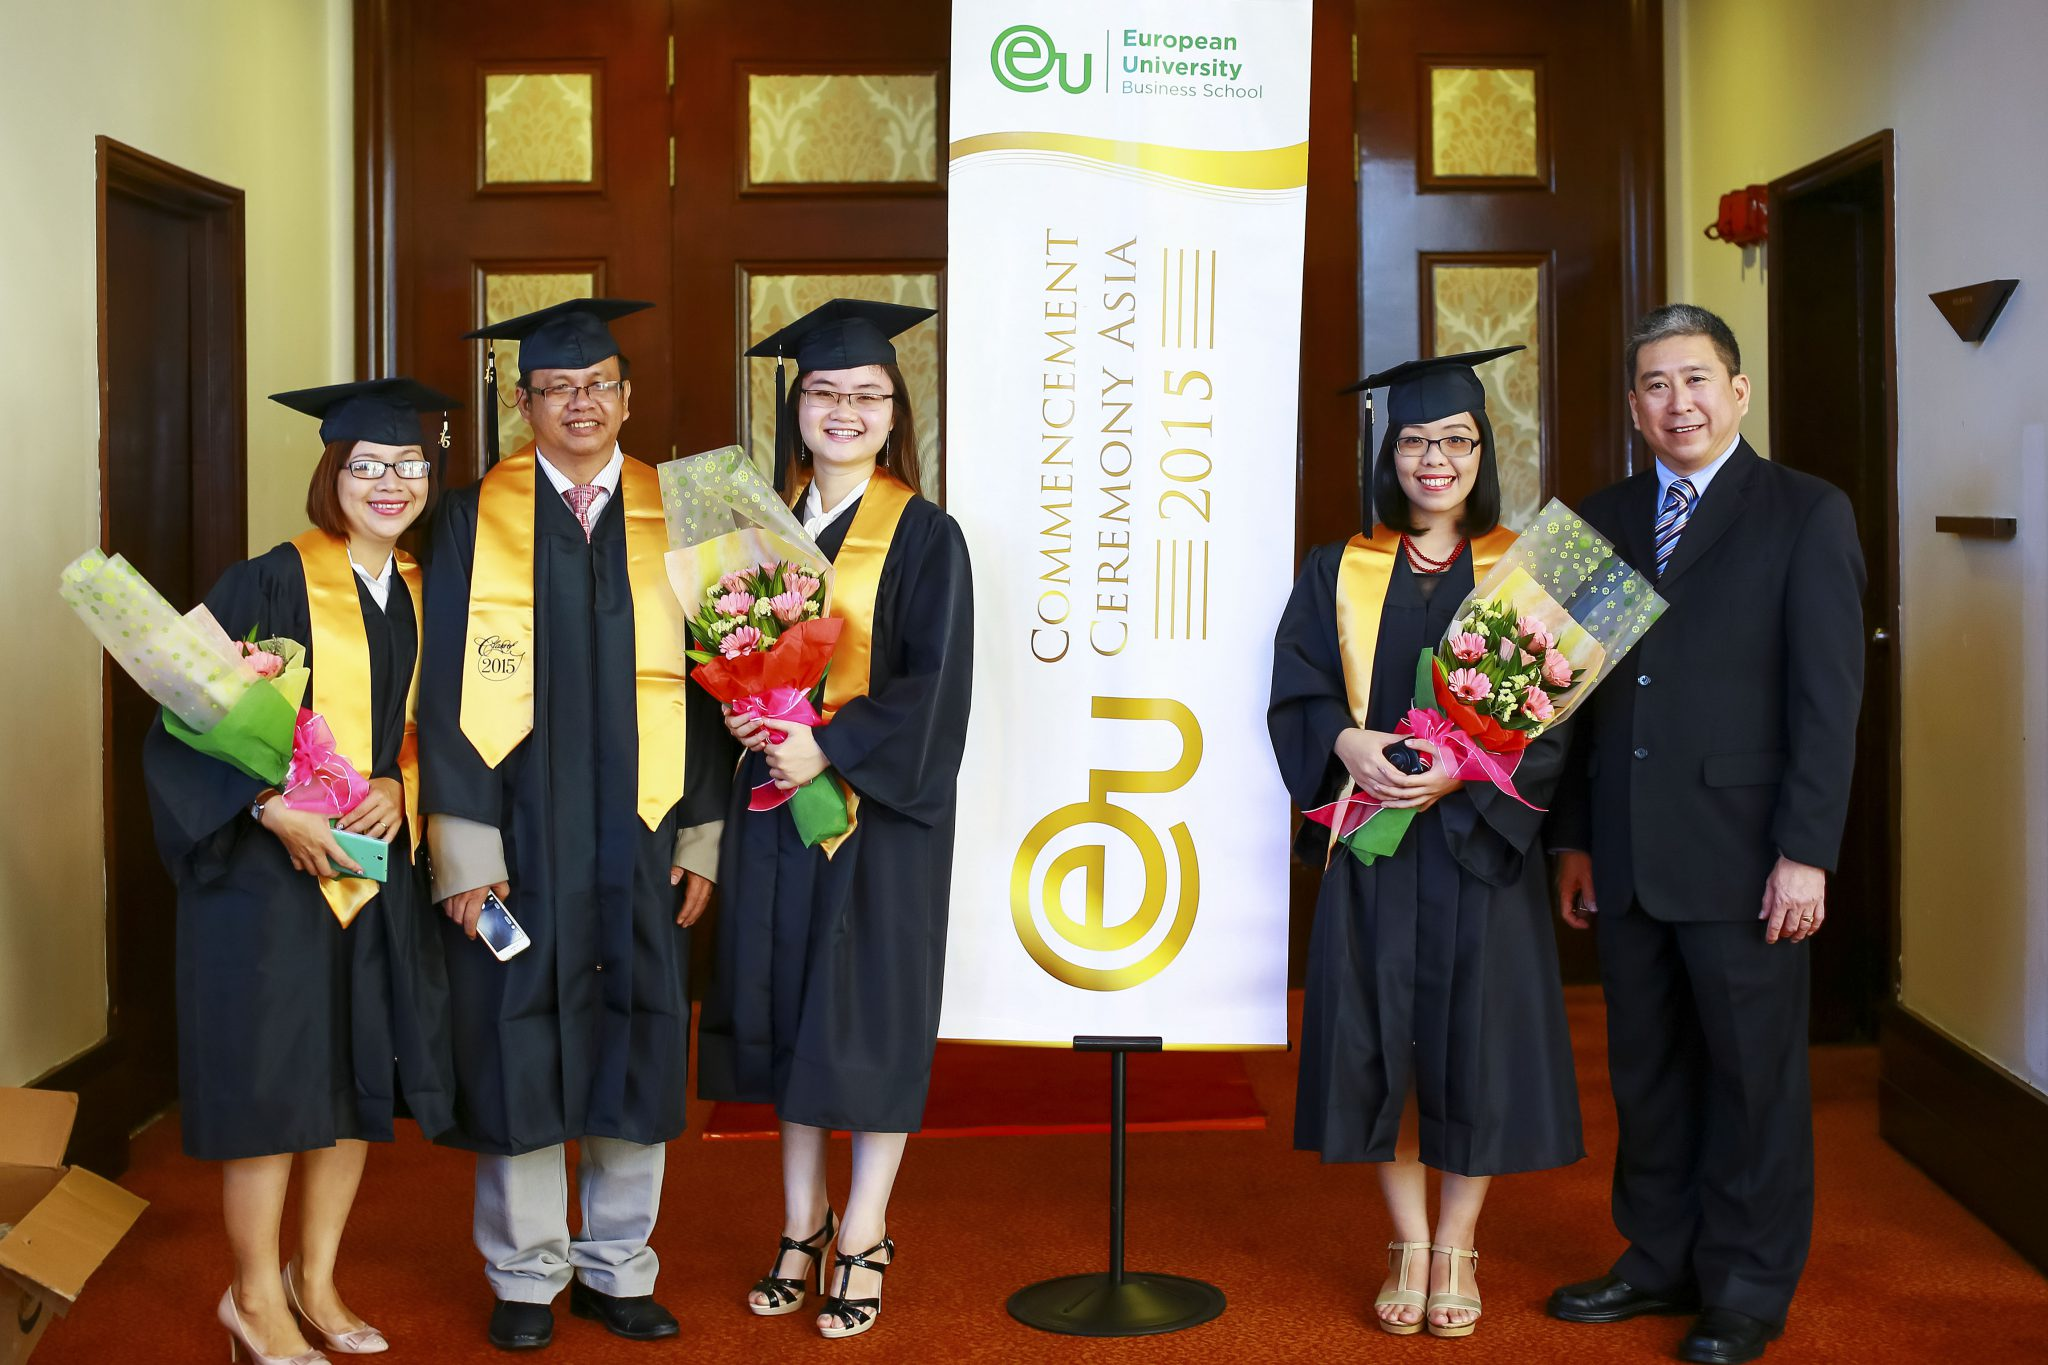 Commencement Celebrations in Kuala Lumpur